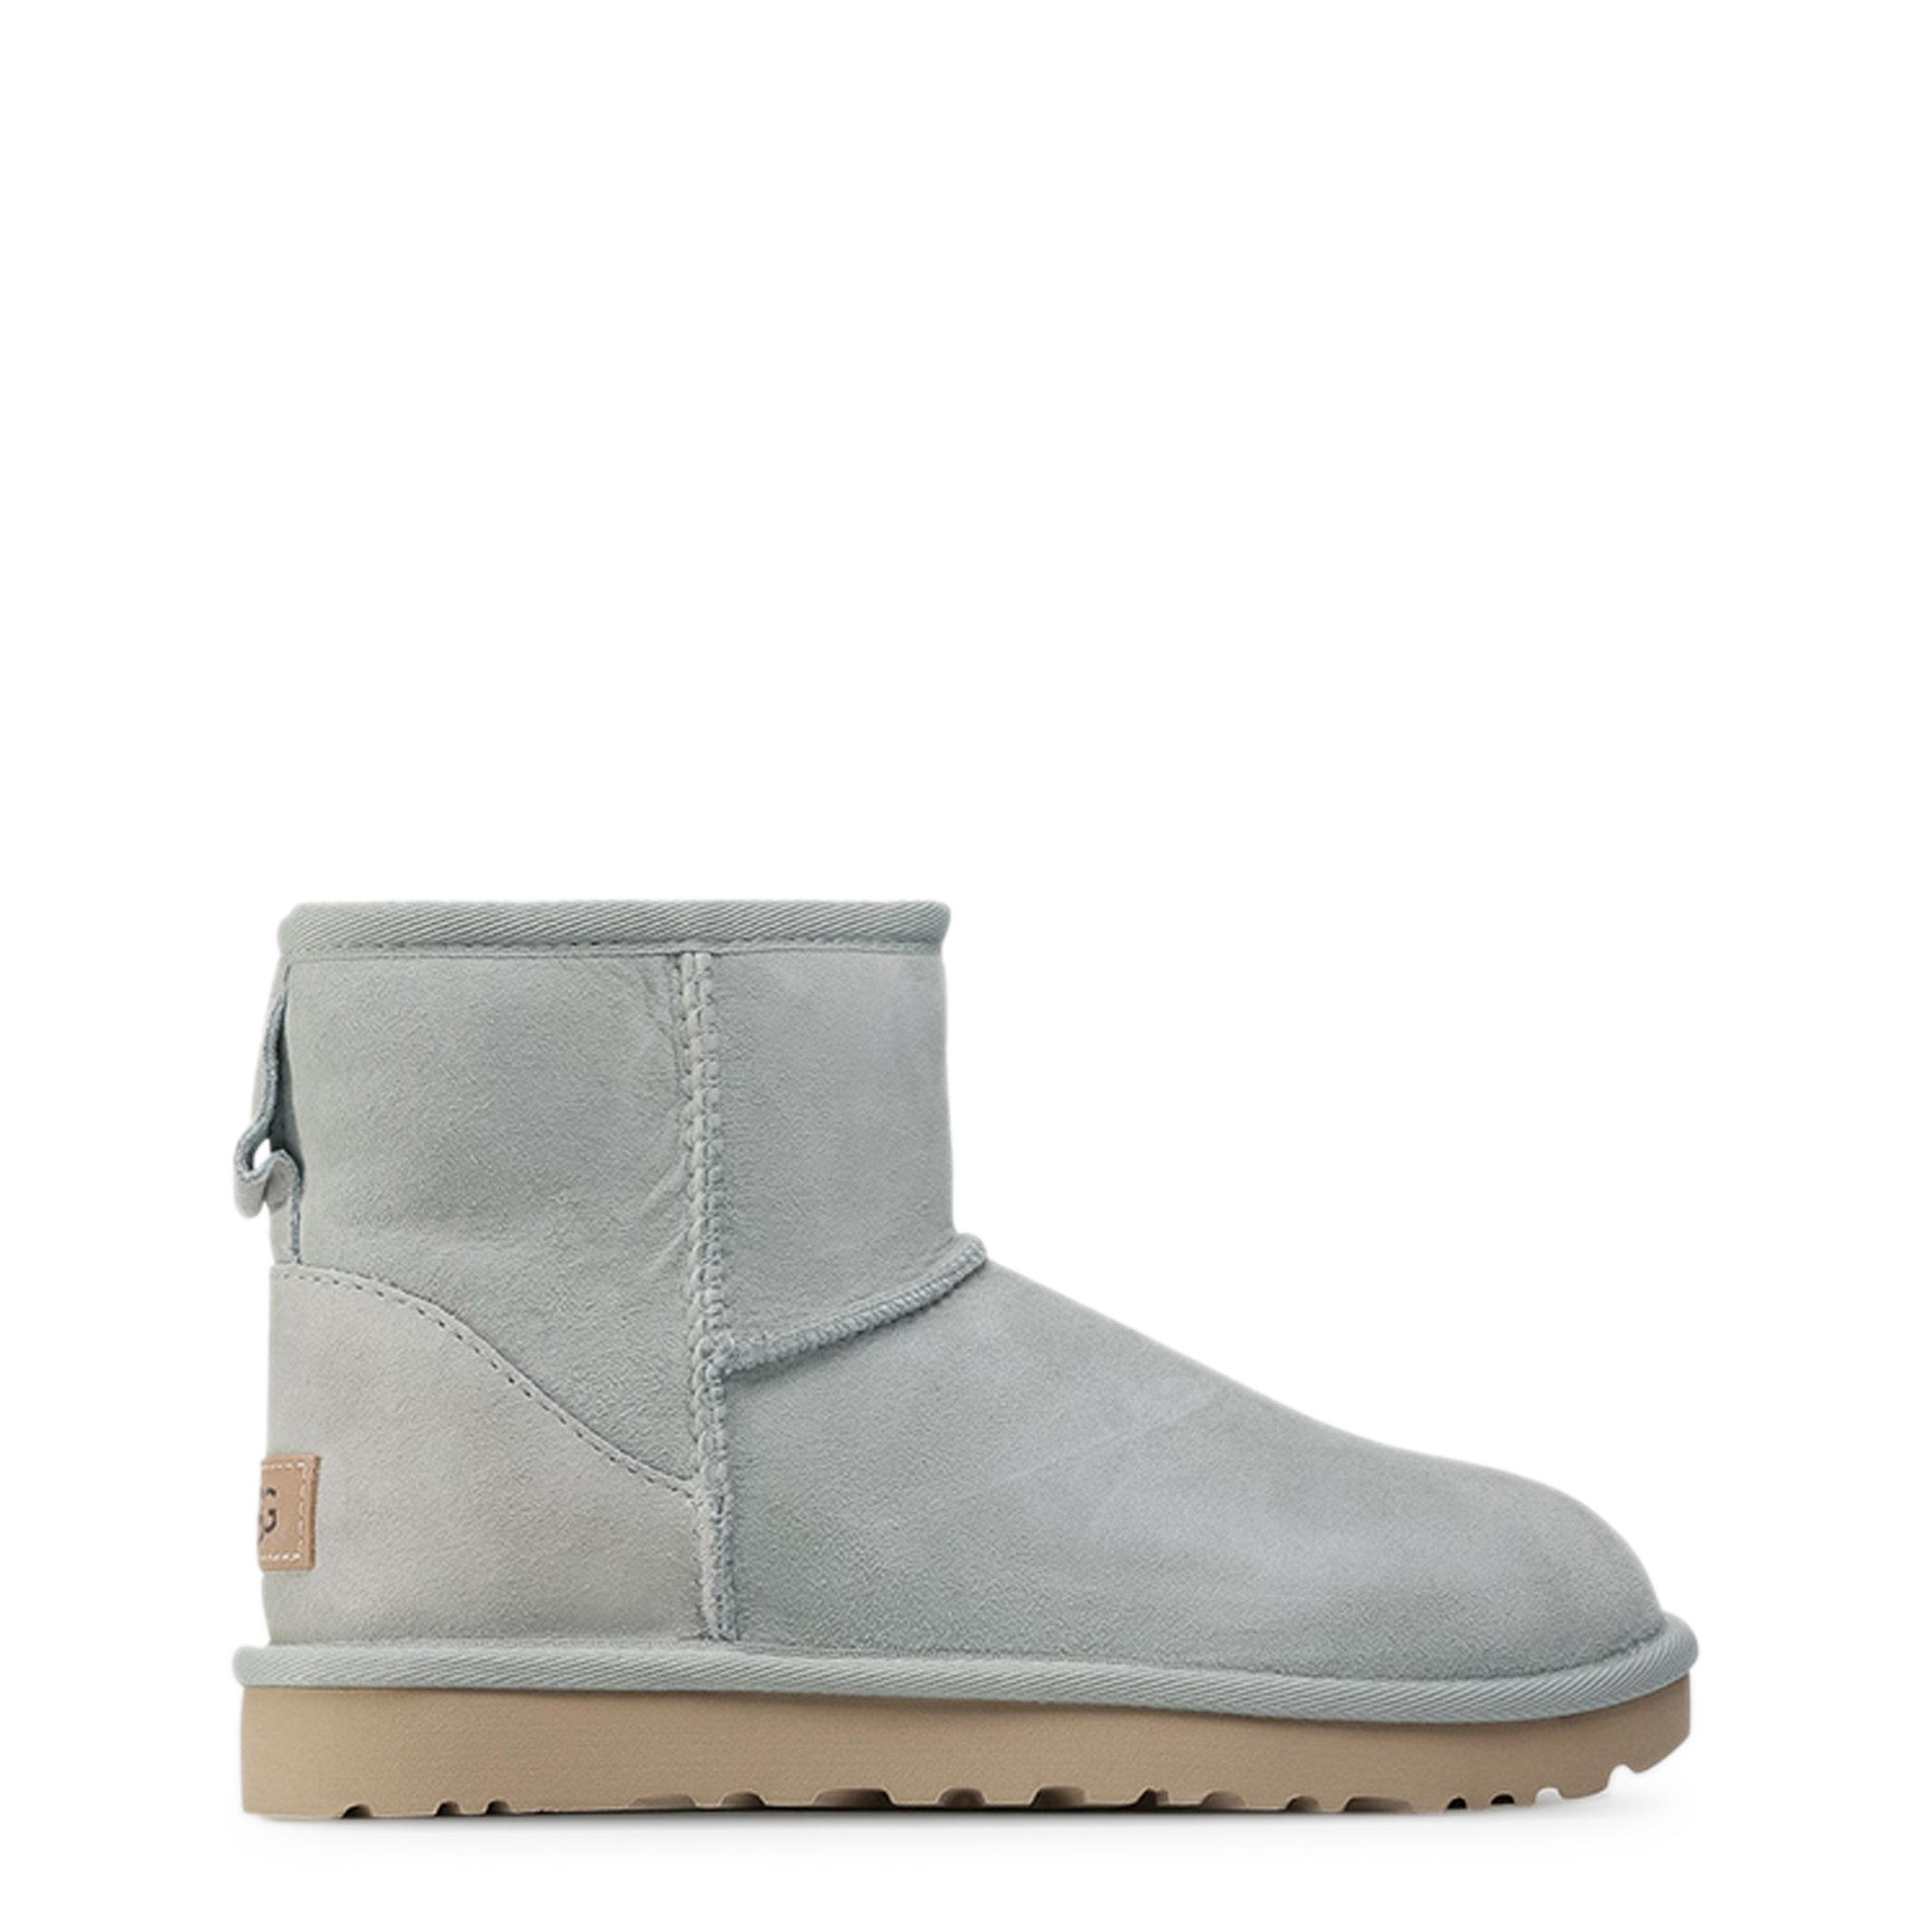 UGG Women's Ankle Boot Various Colours 1016222 - grey-1 EU 36